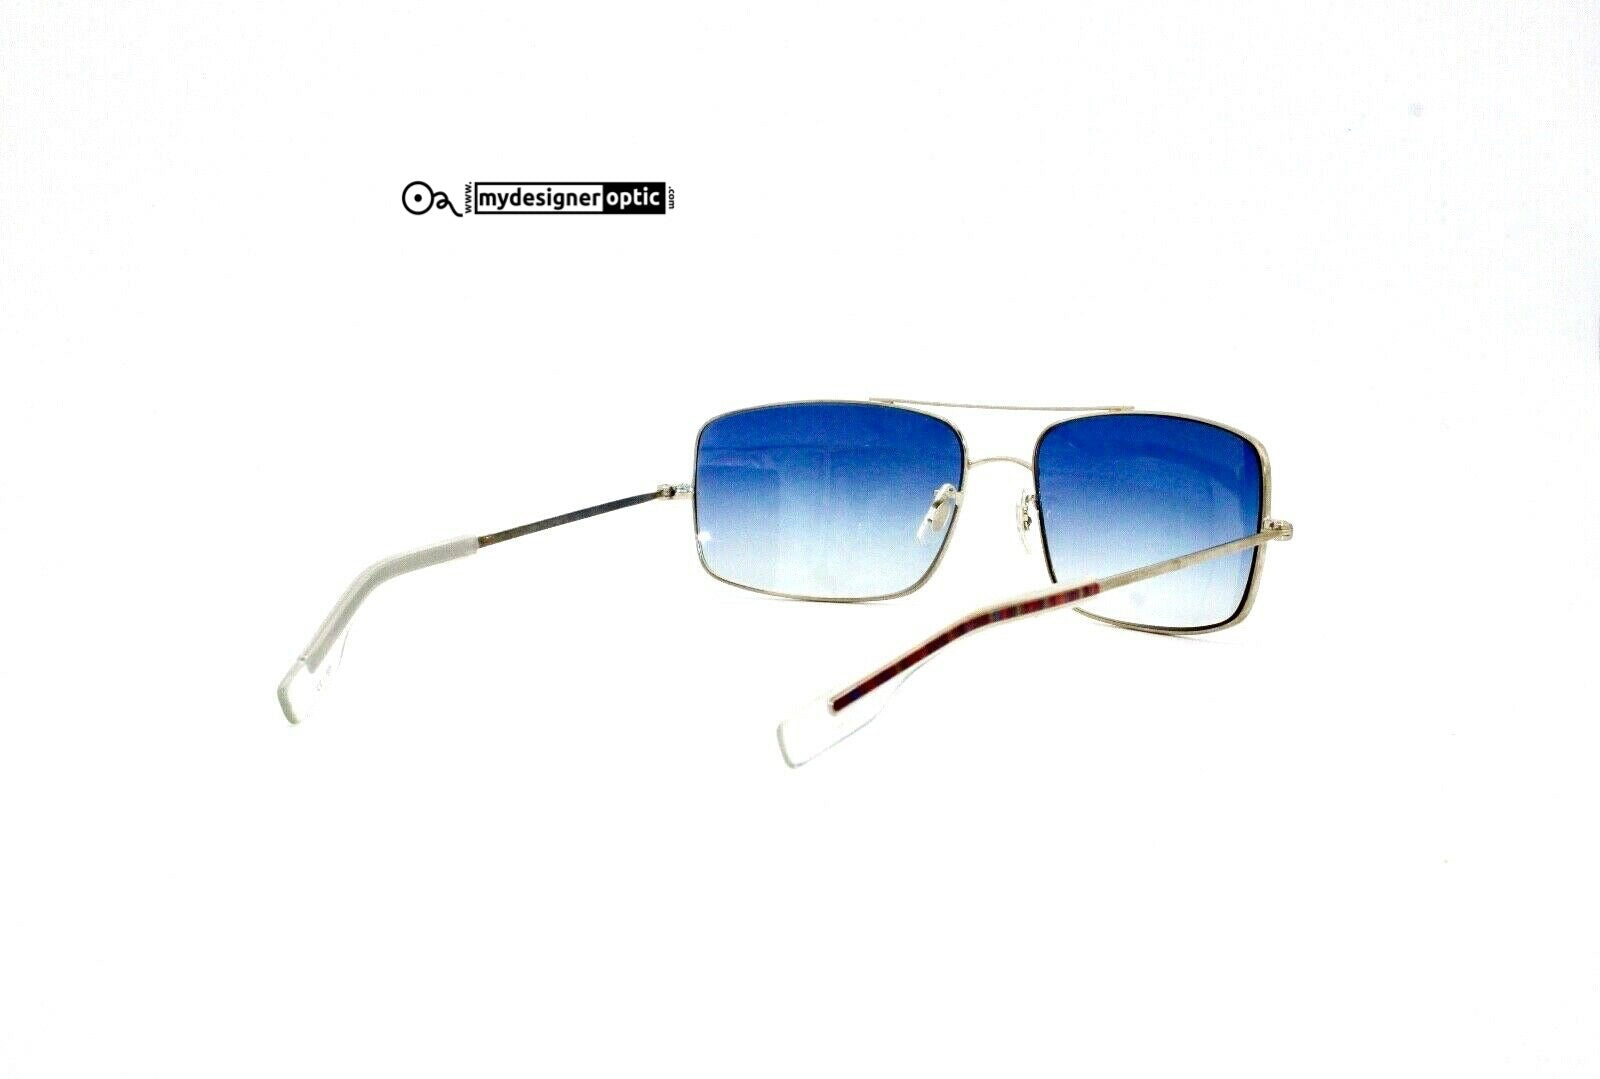 Paul Smith Sunglasses PS-834 59-16-135 Made in Japan (Real Dead Stock) - Mydesigneroptic